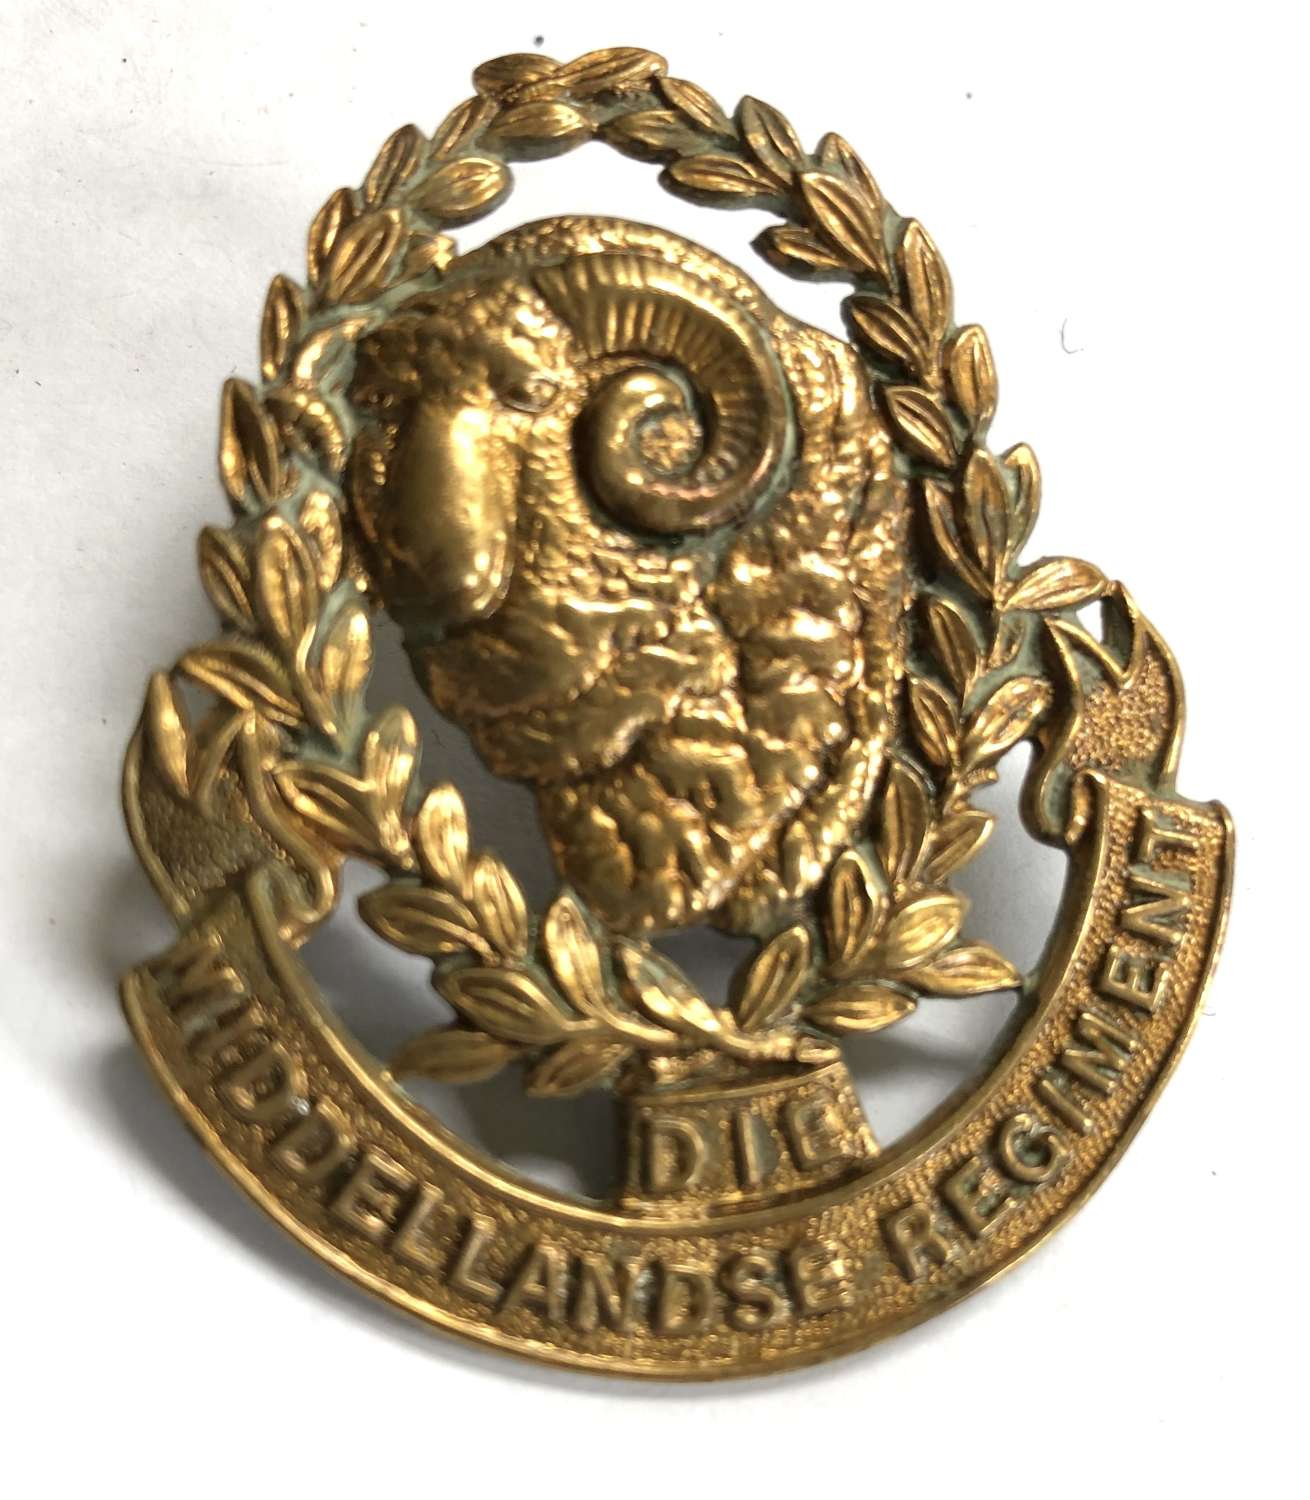 South Africa. Die Middellandse Regiment post 1935 cap badge